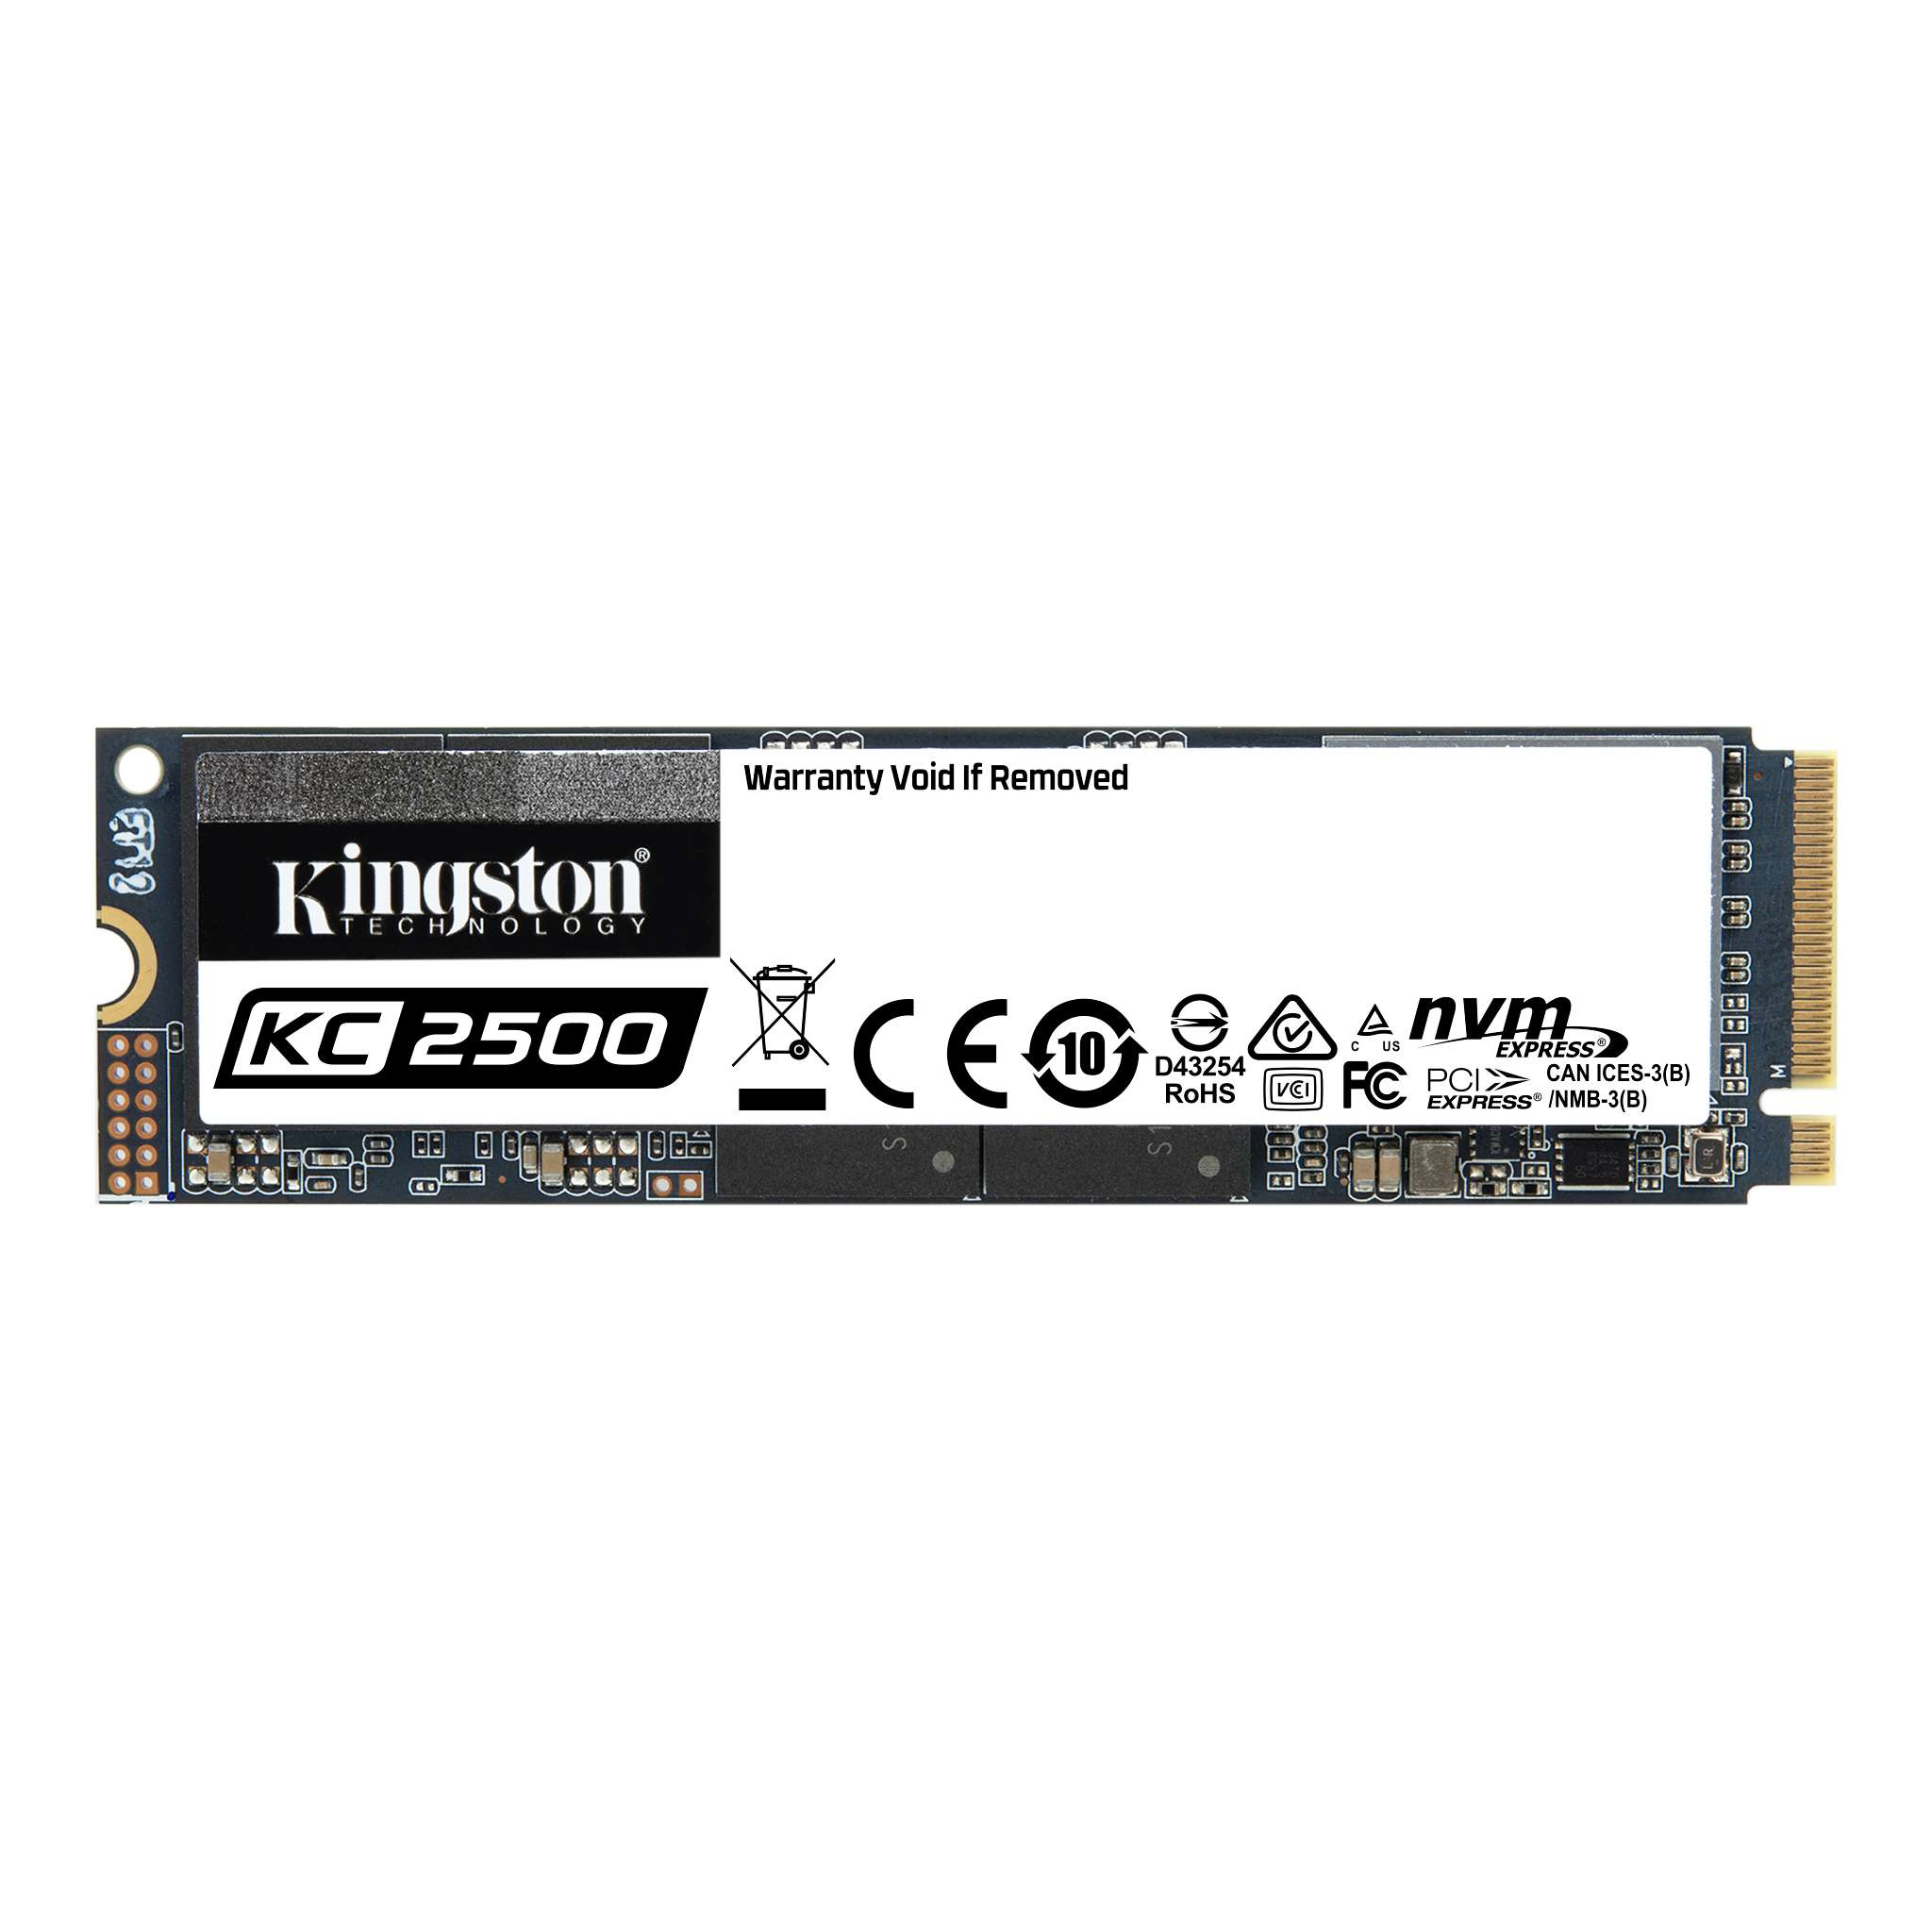 Kingston KC2500 Solid-State Drive (SSD)review